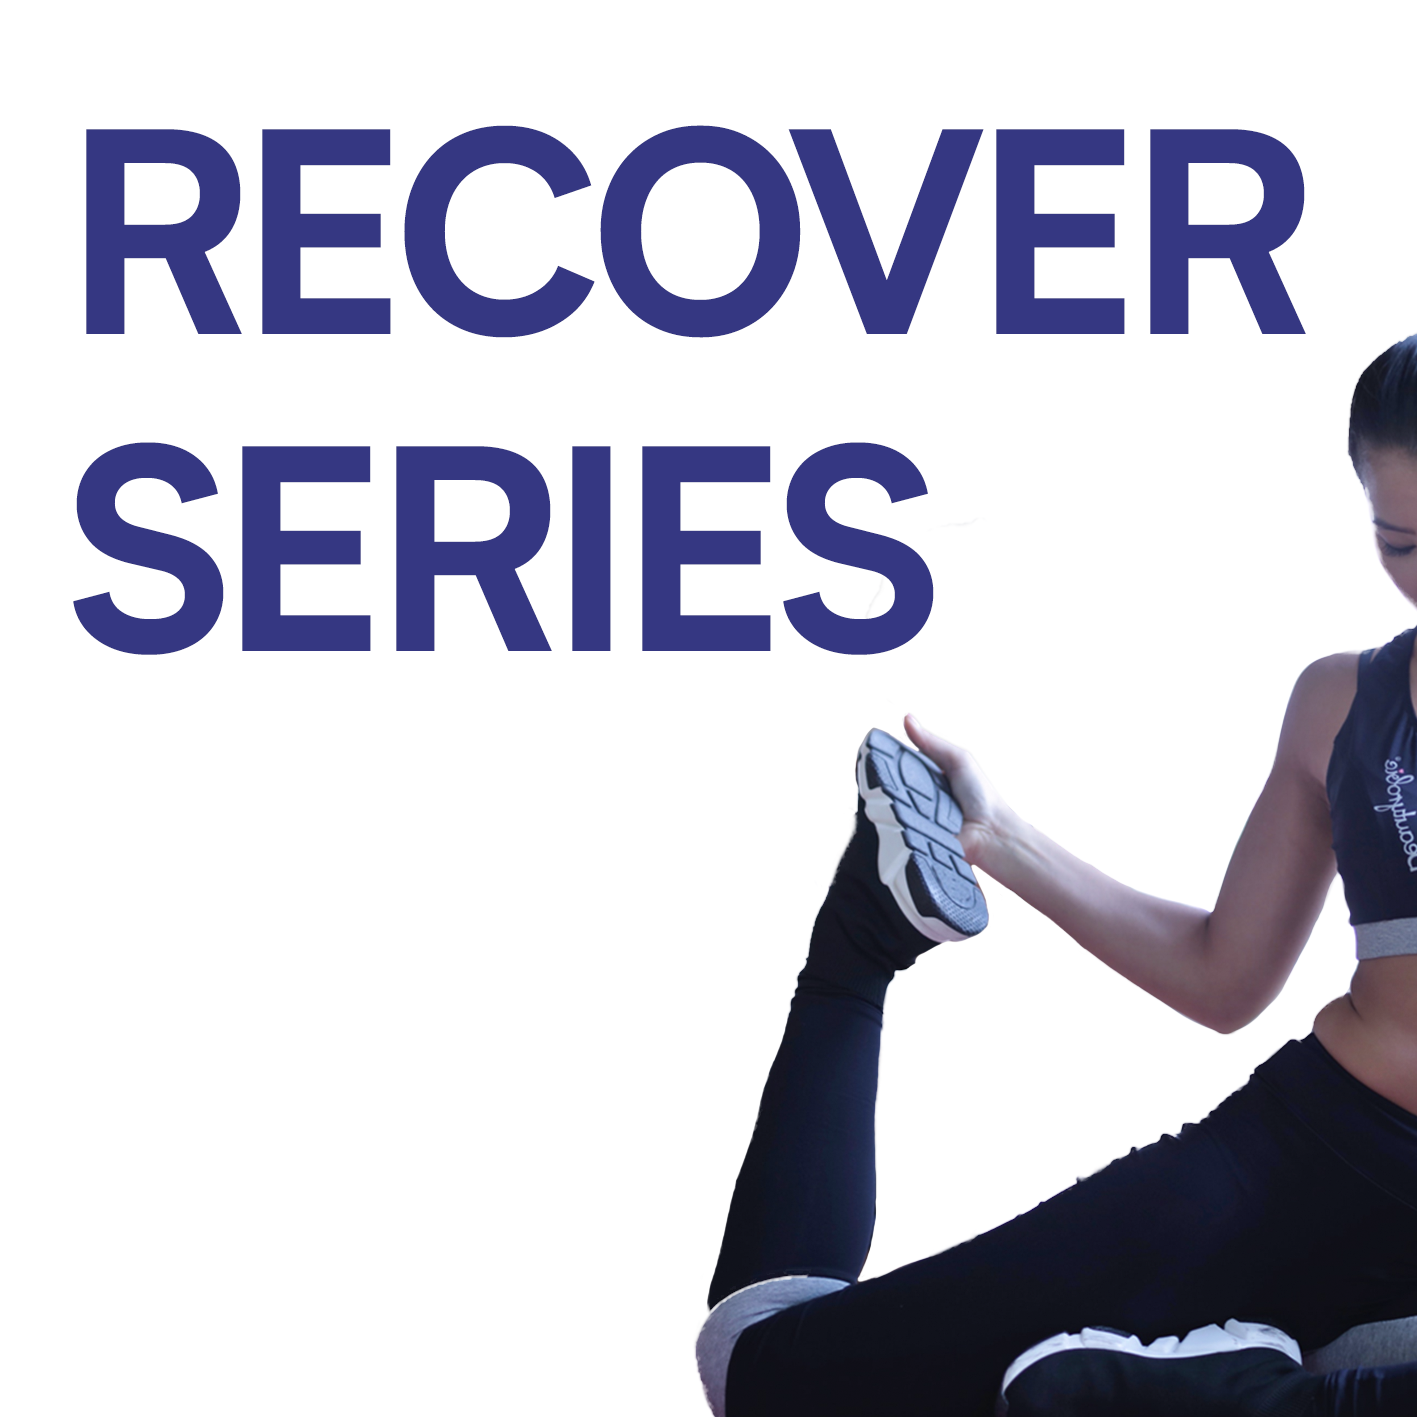 Recovery Series - For faster recovery